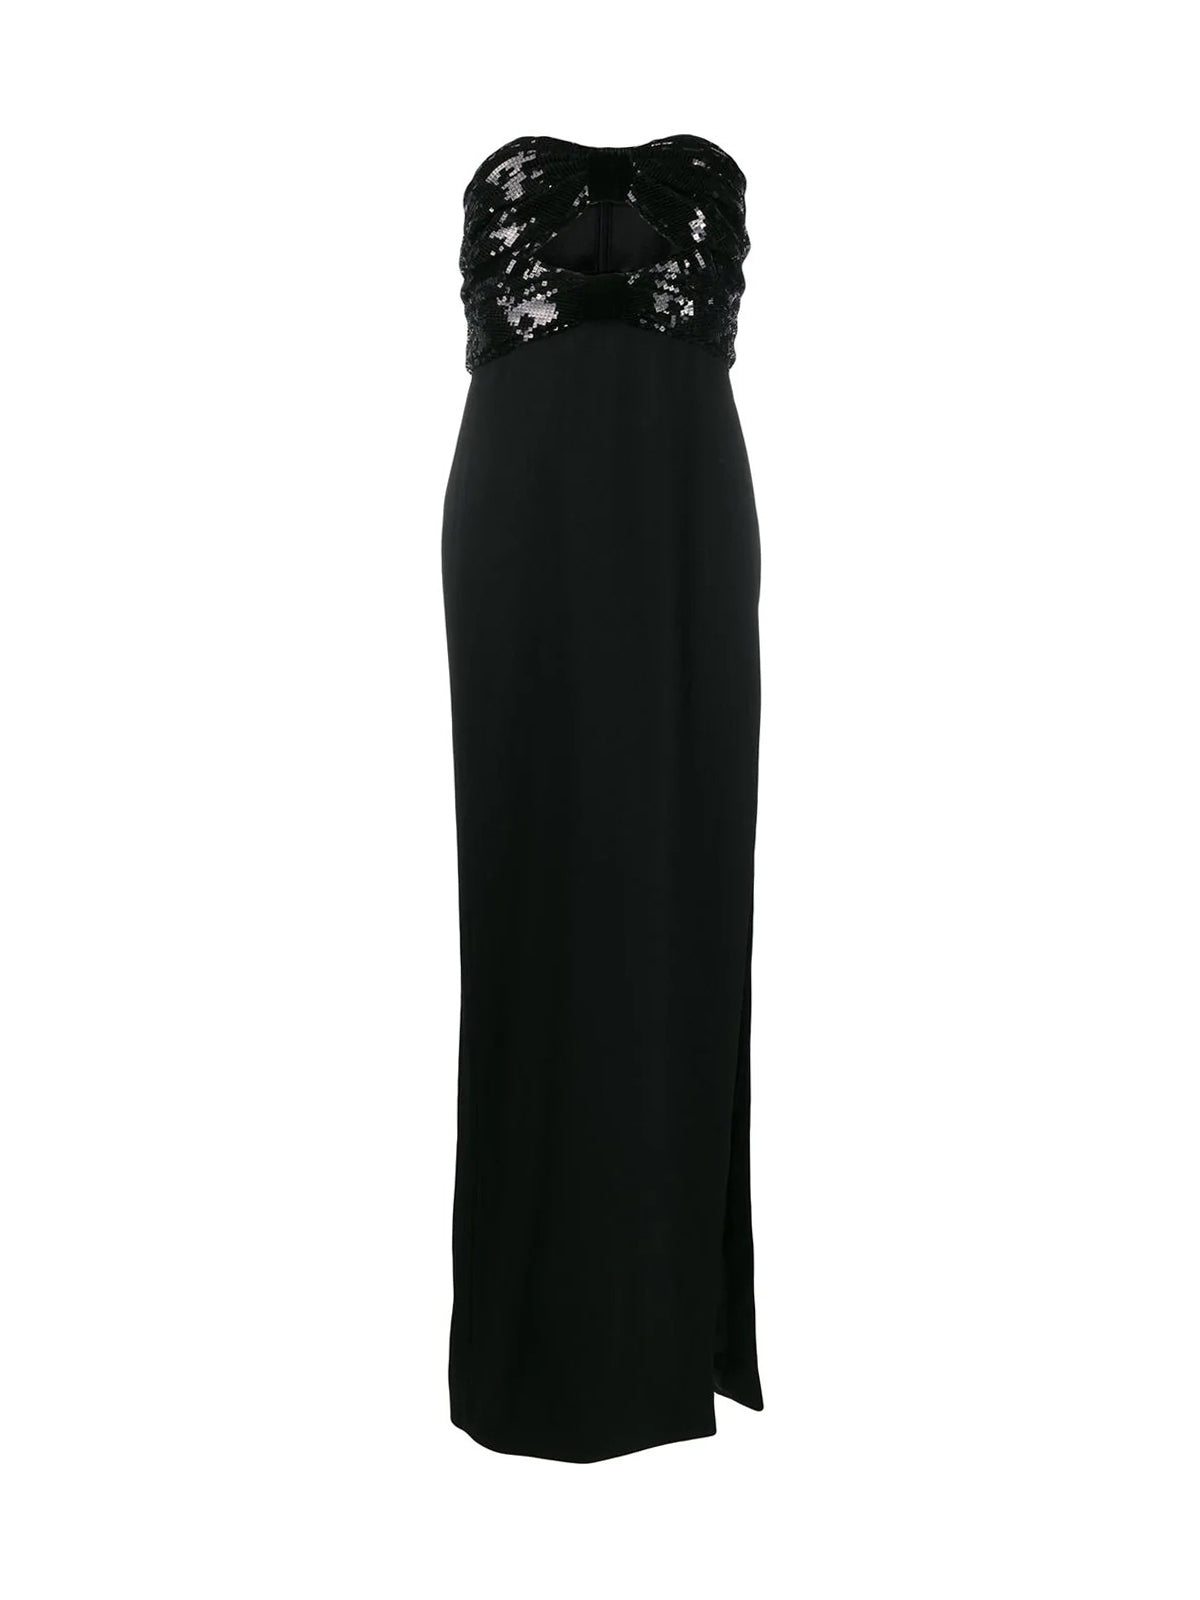 sequin-embellished evening gown